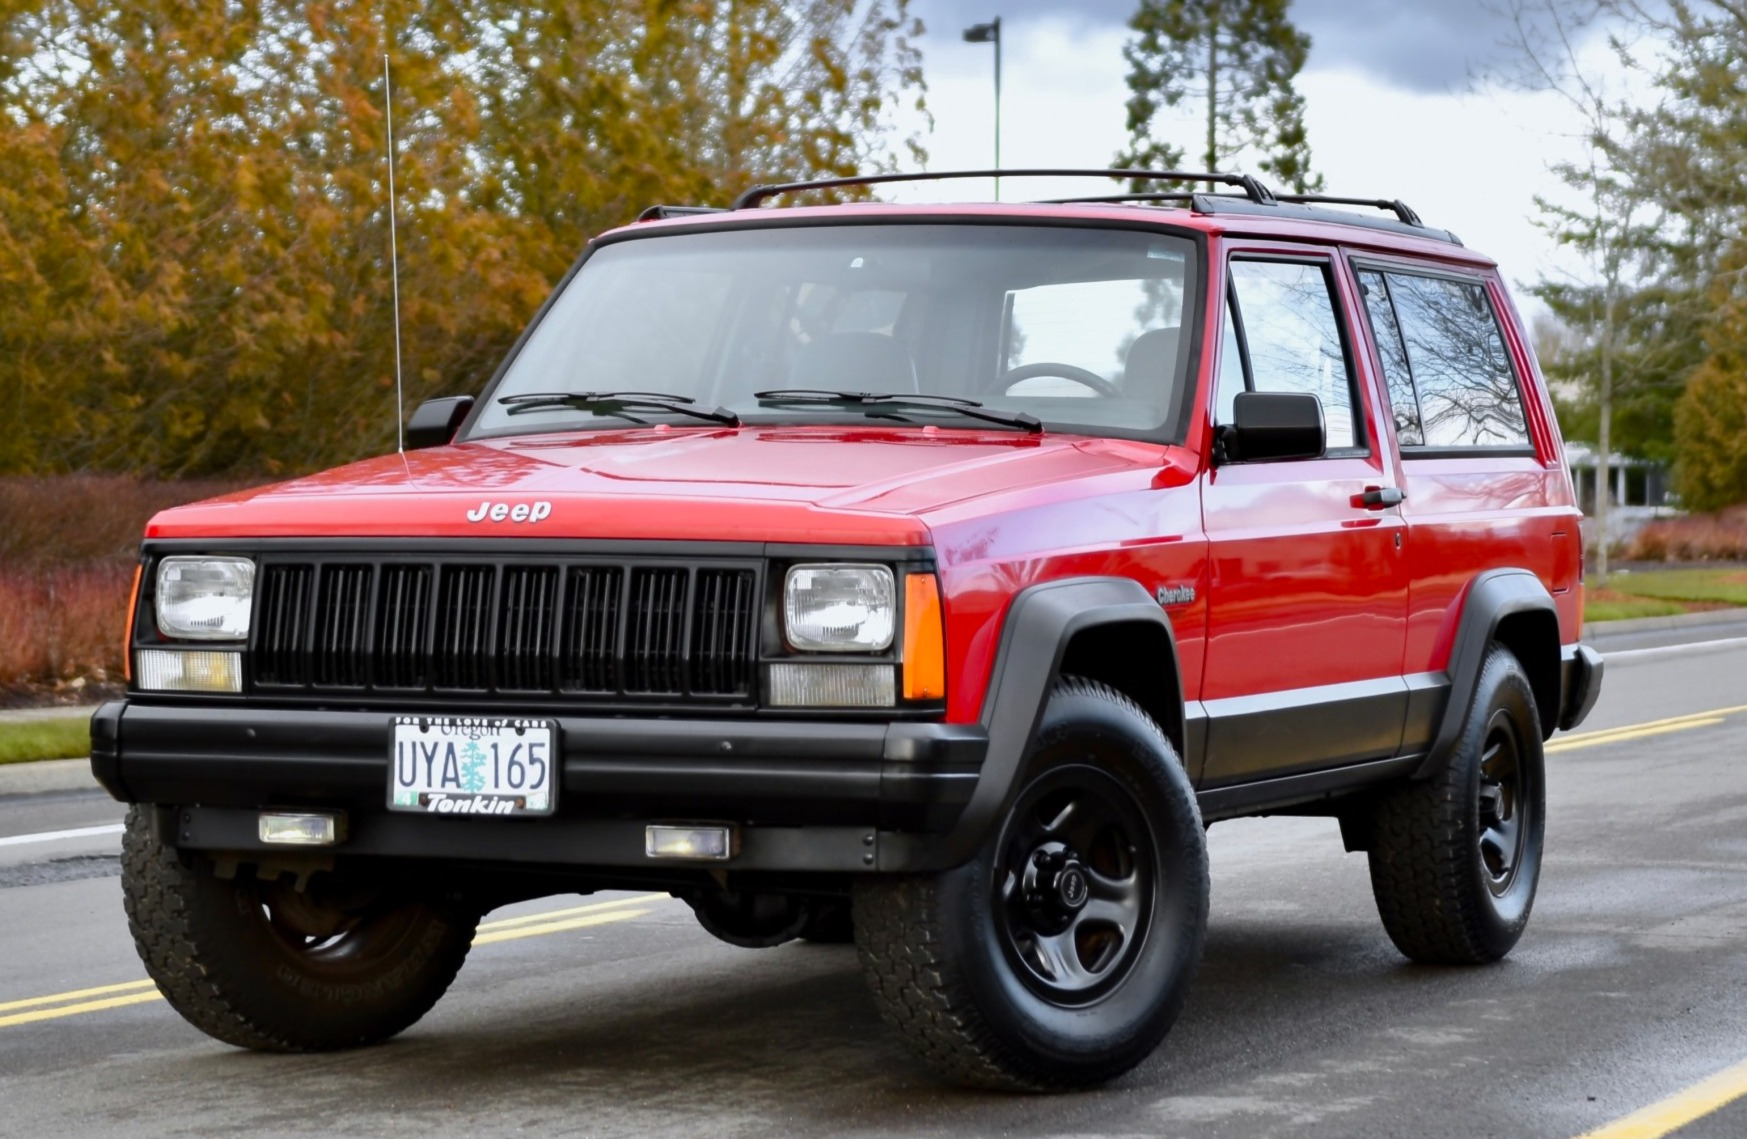 hight resolution of 1996 jeep cherokee 4x4 2 door for sale on bat auctions closed on april 4 2019 lot 17 641 bring a trailer